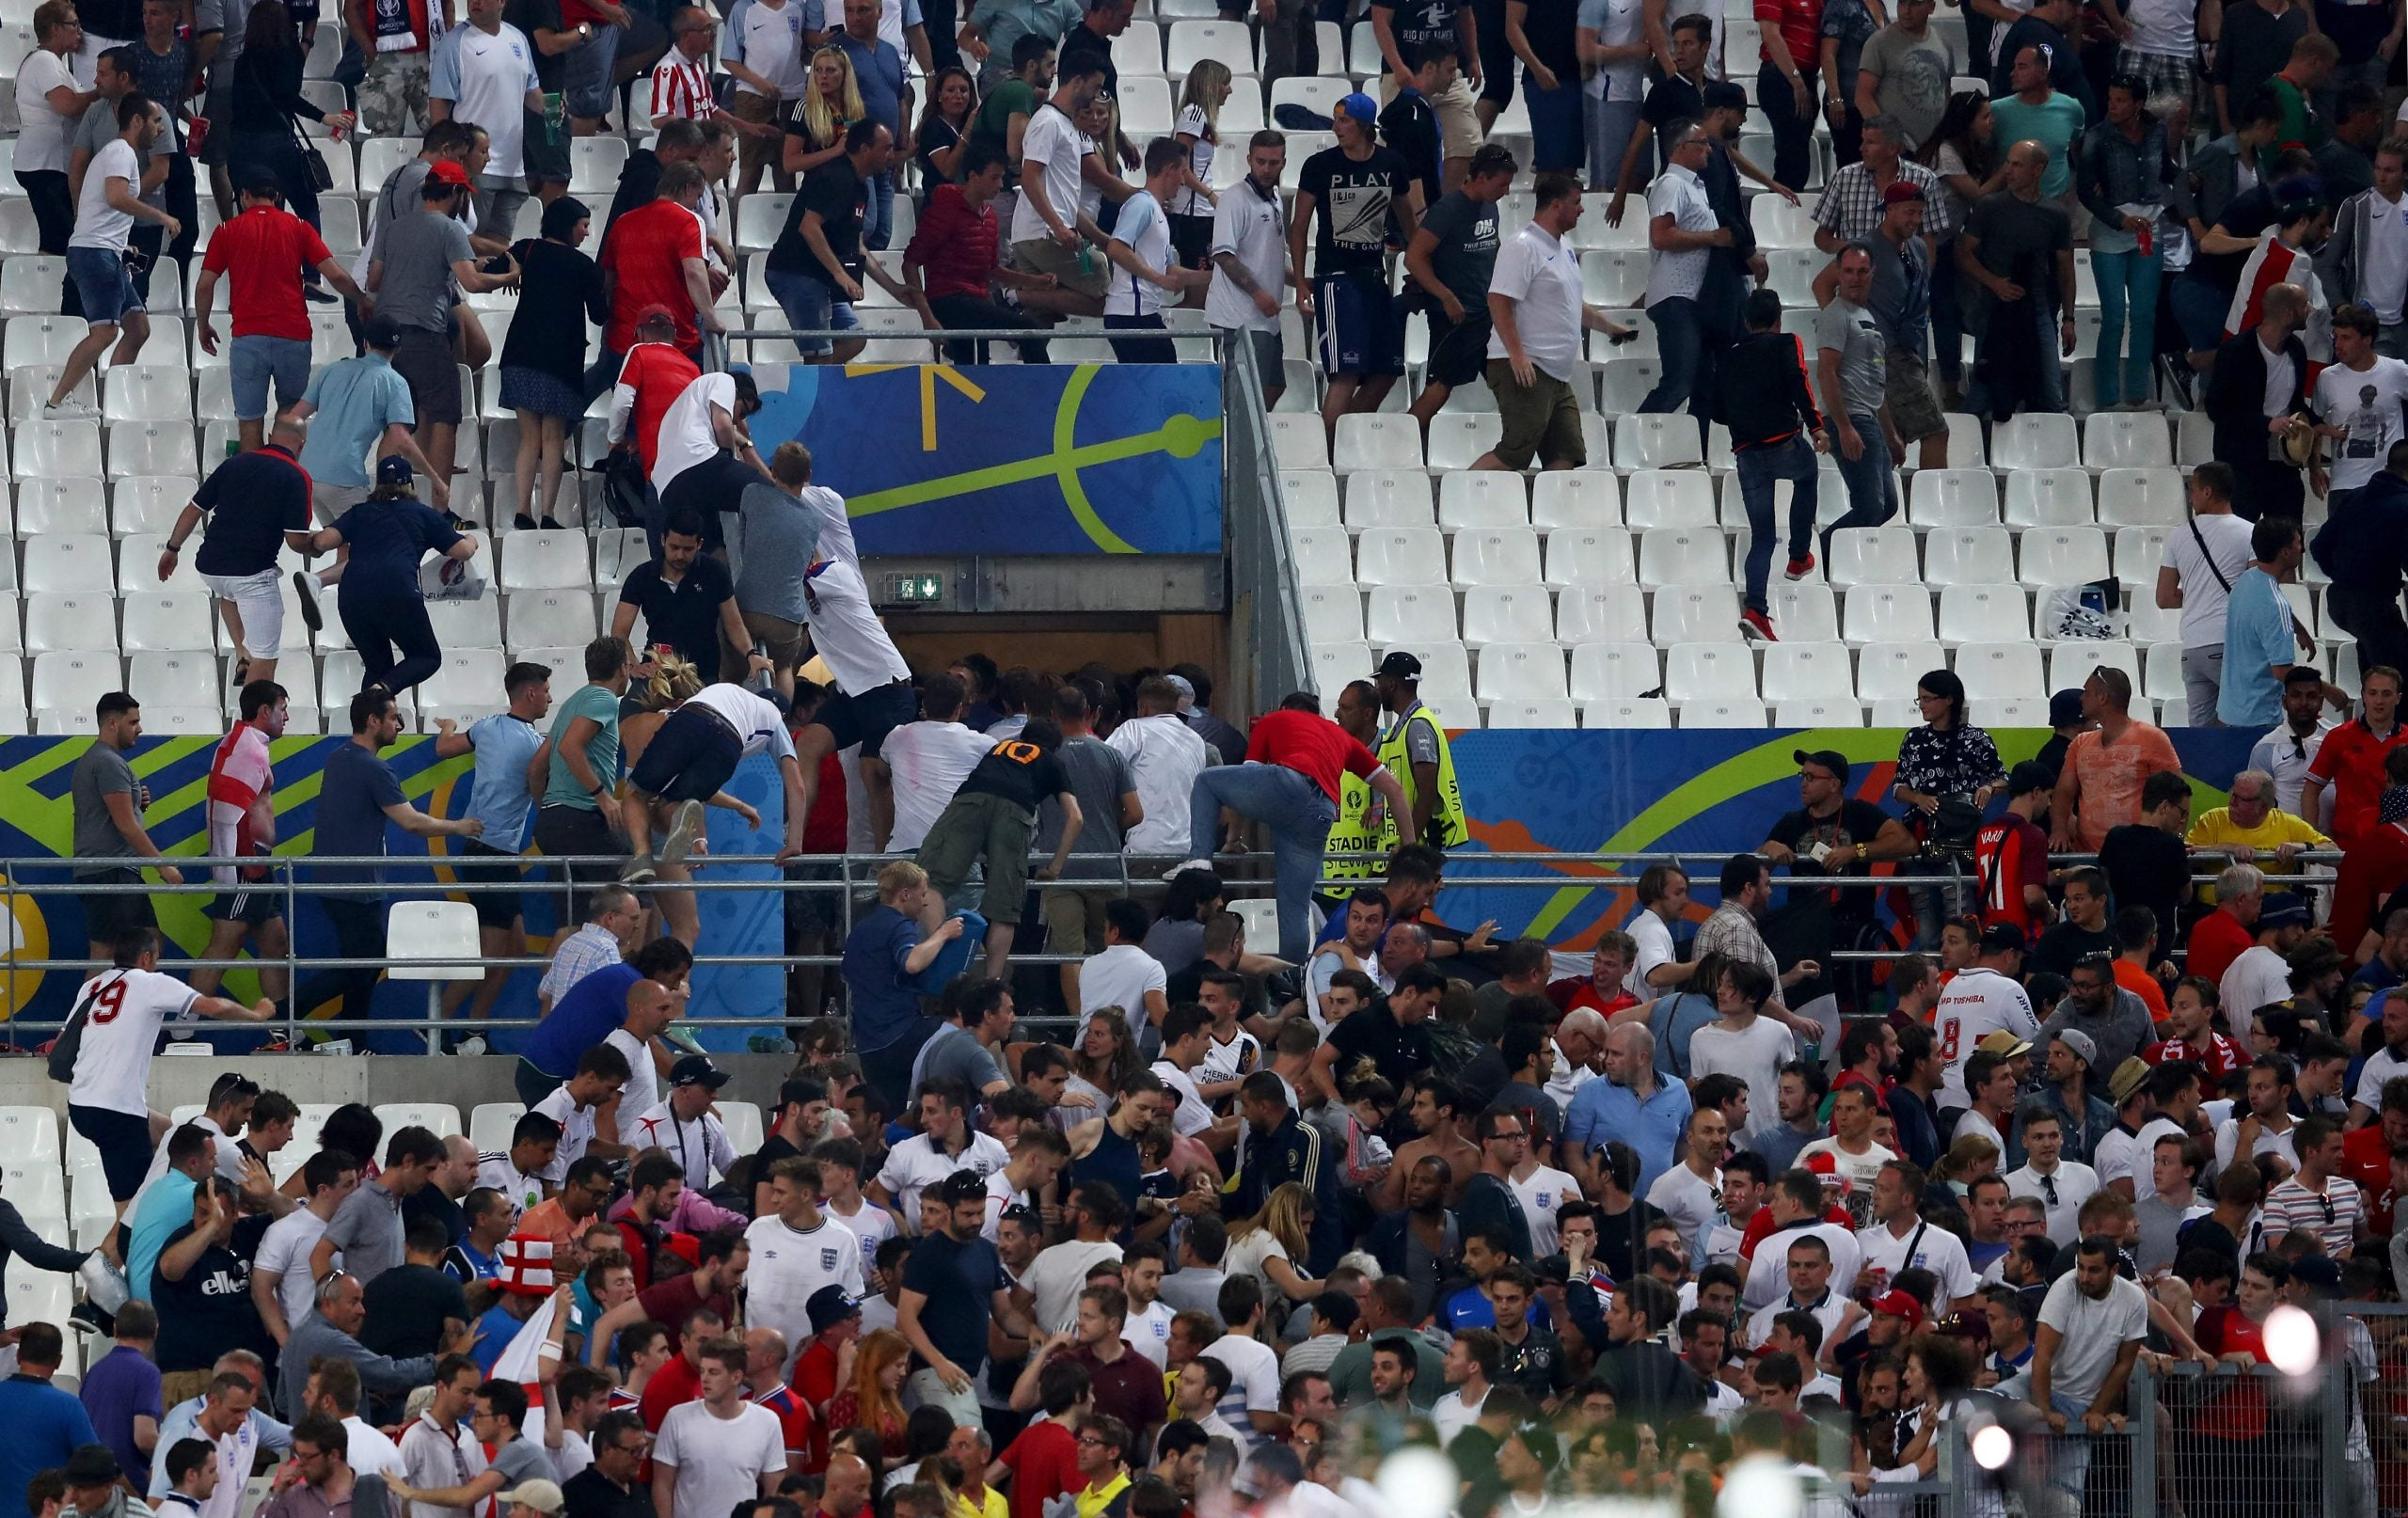 Blood on the streets: the charge of the hooligans at Euro 2016